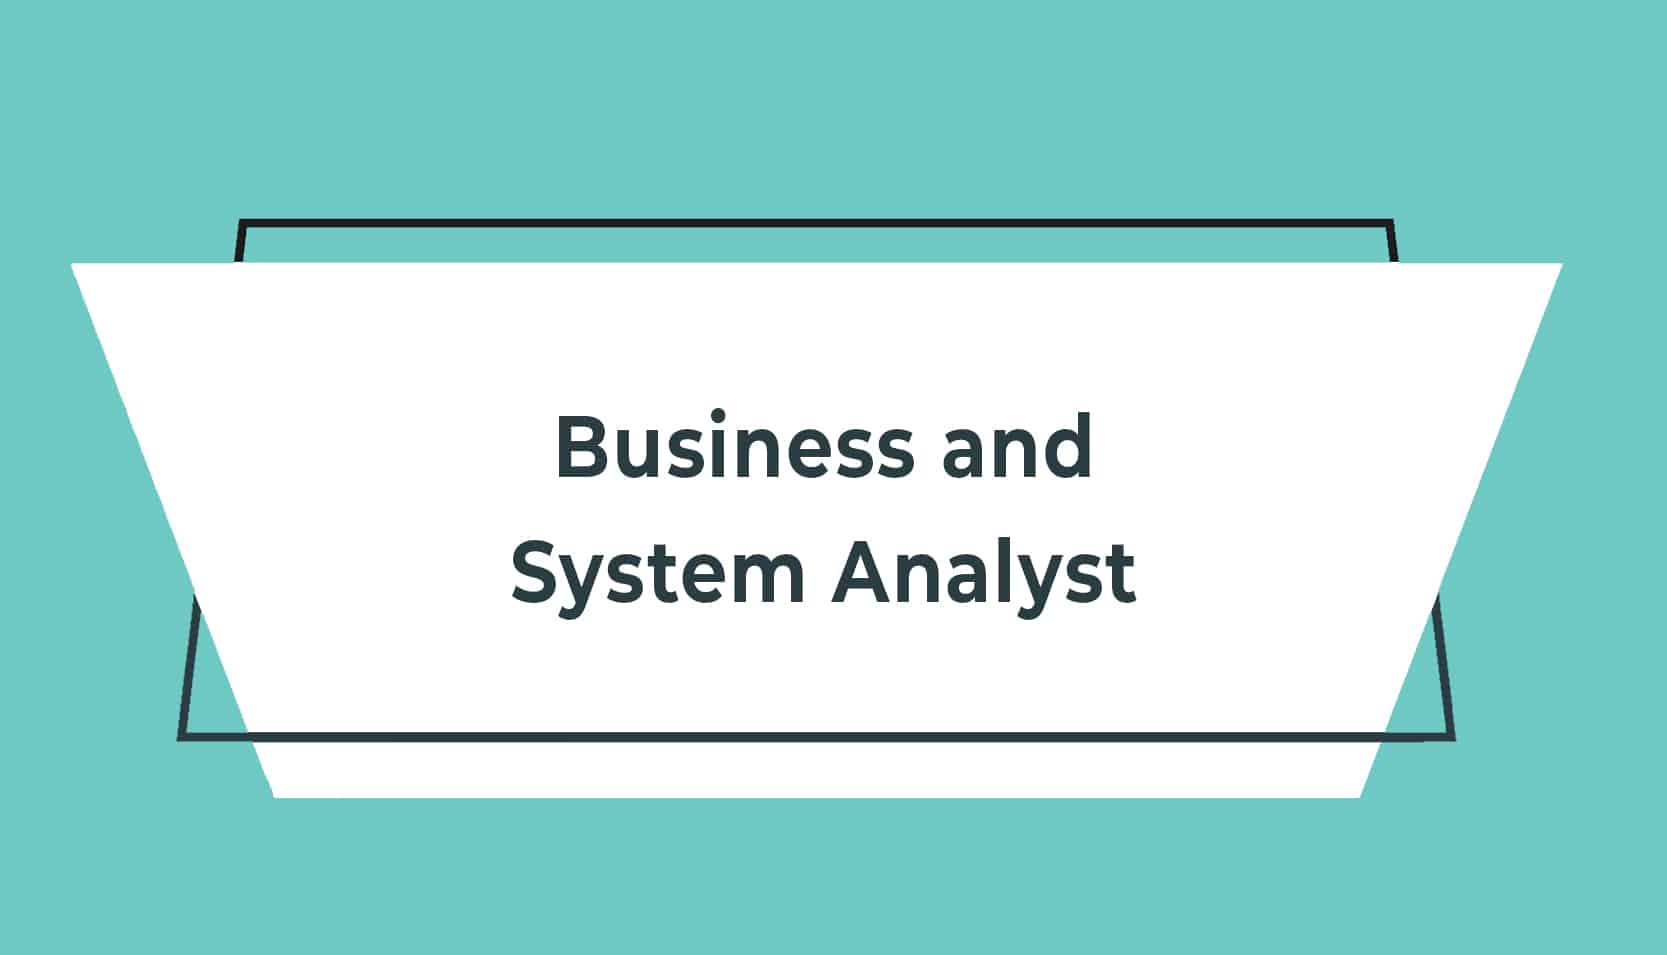 JD adverts V2 Business and System Analyst